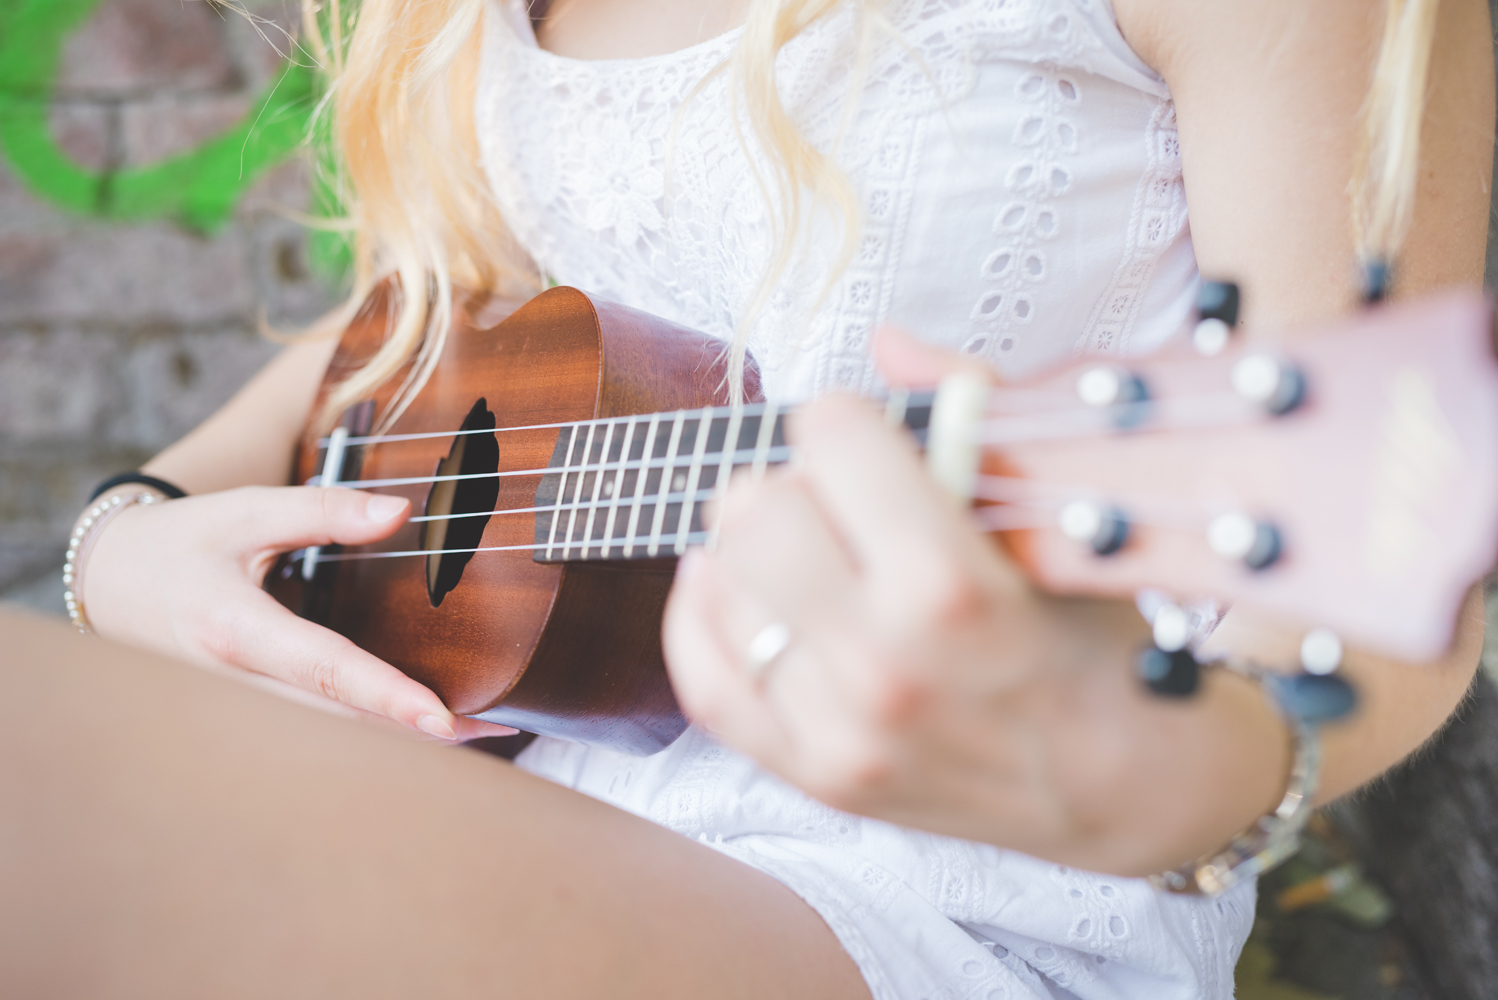 graphicstock close up hand young millennial caucasian woman playing ukulele music song chord concept STQ pF1W